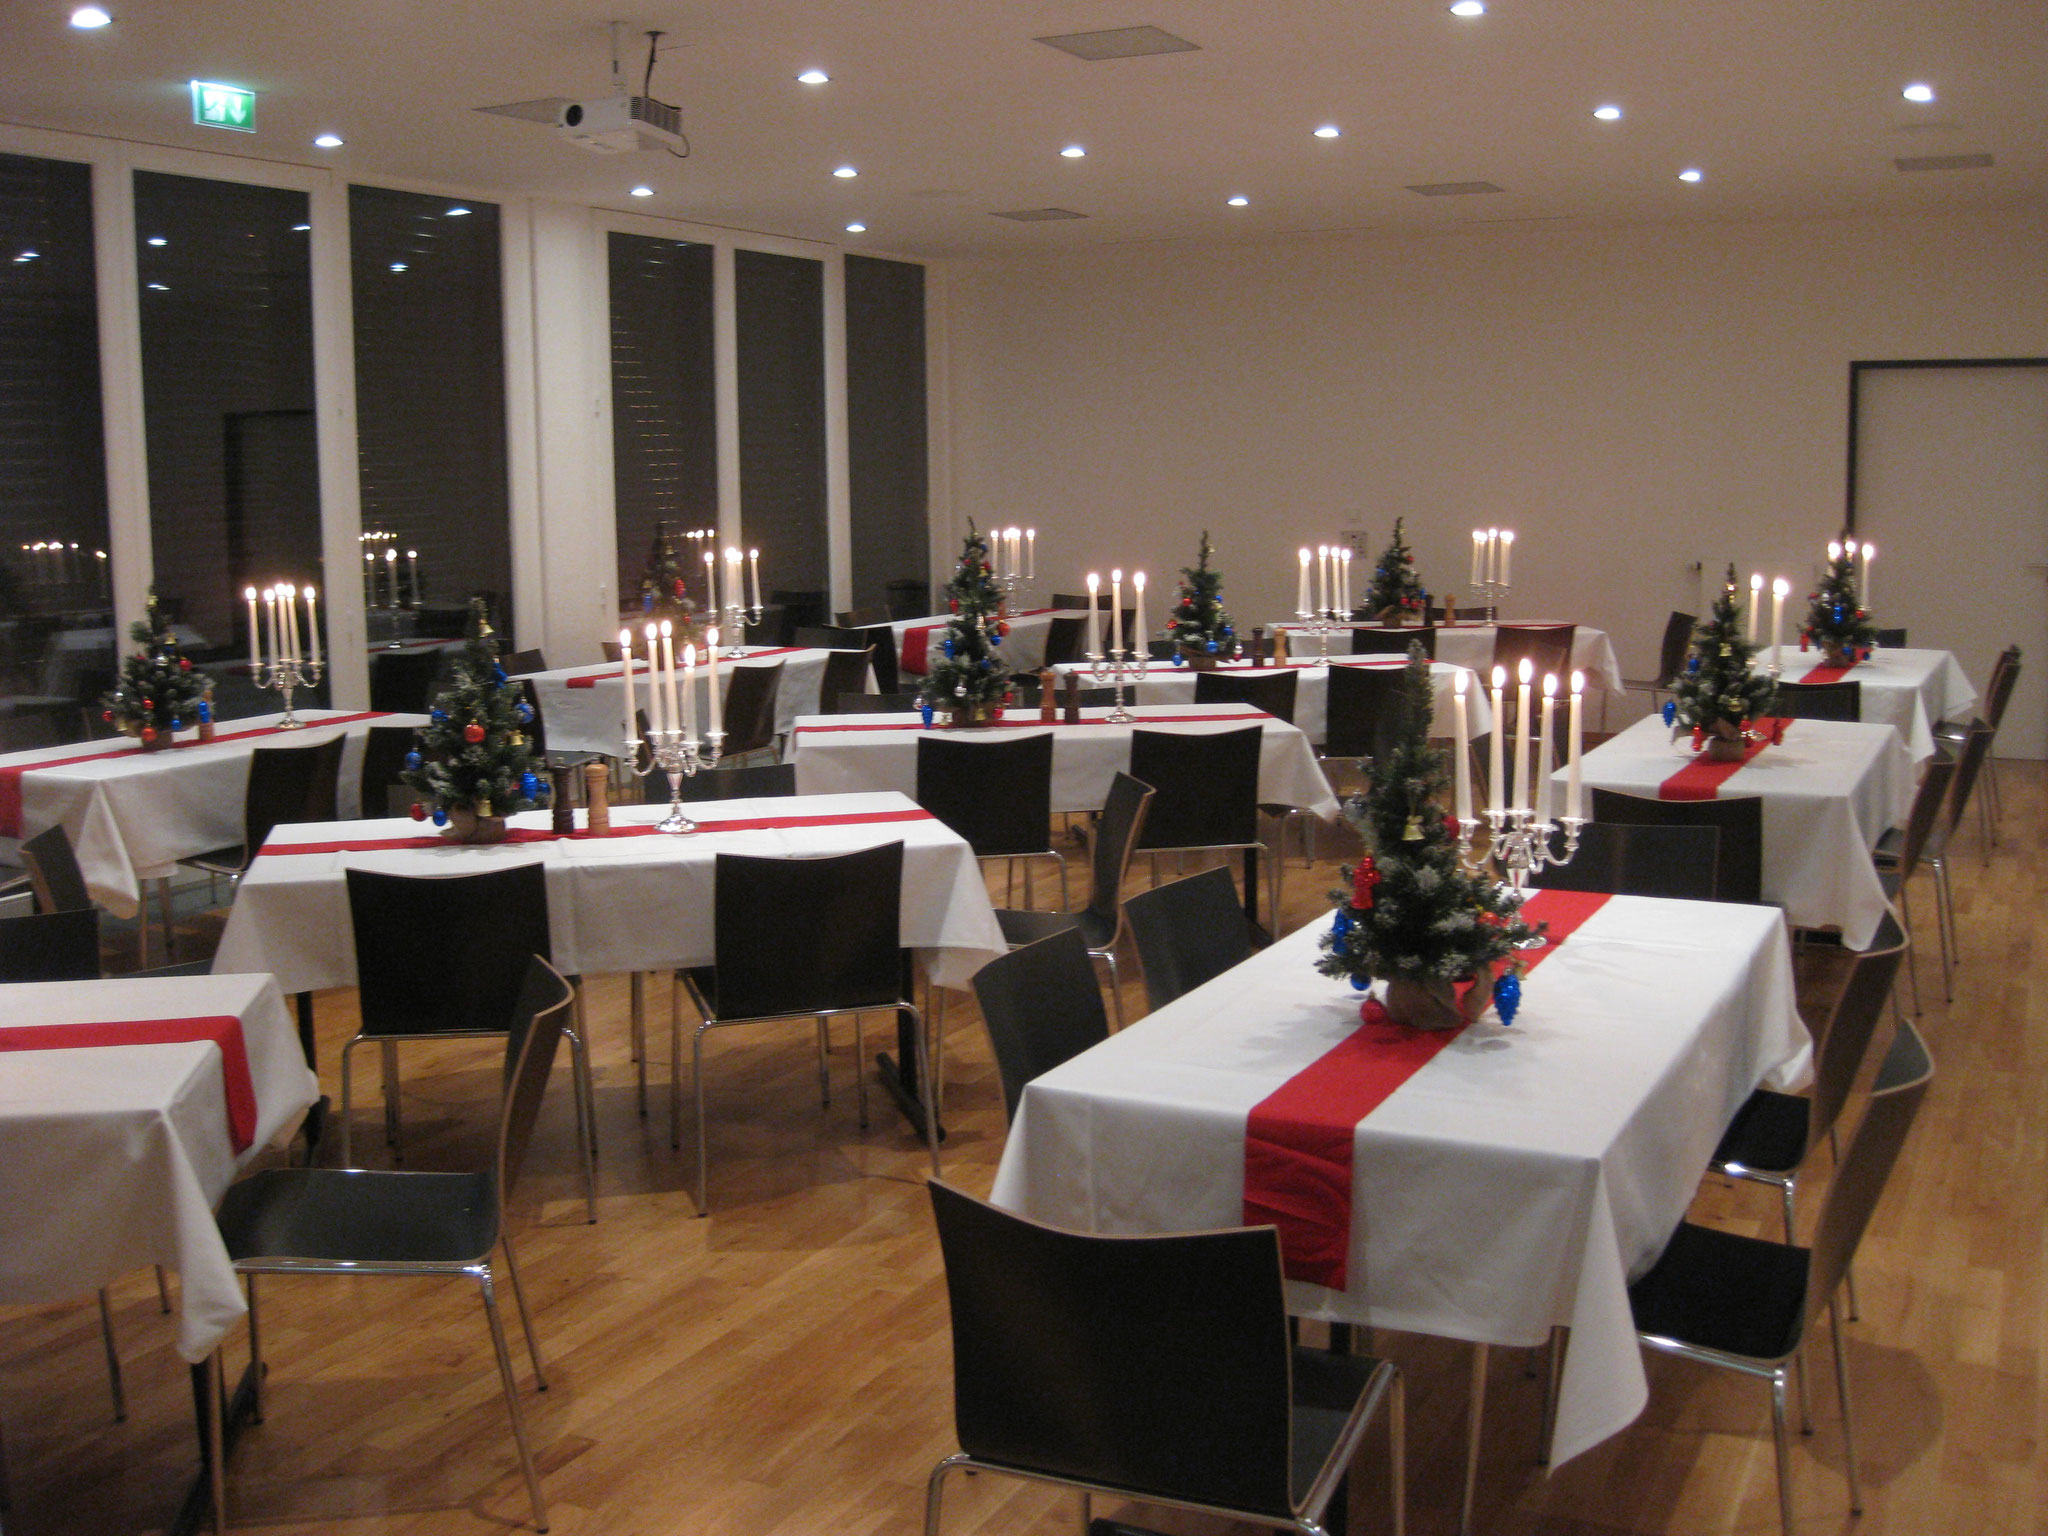 weihnachtsfeier oetzbach feinkost catering ratingen nrw. Black Bedroom Furniture Sets. Home Design Ideas